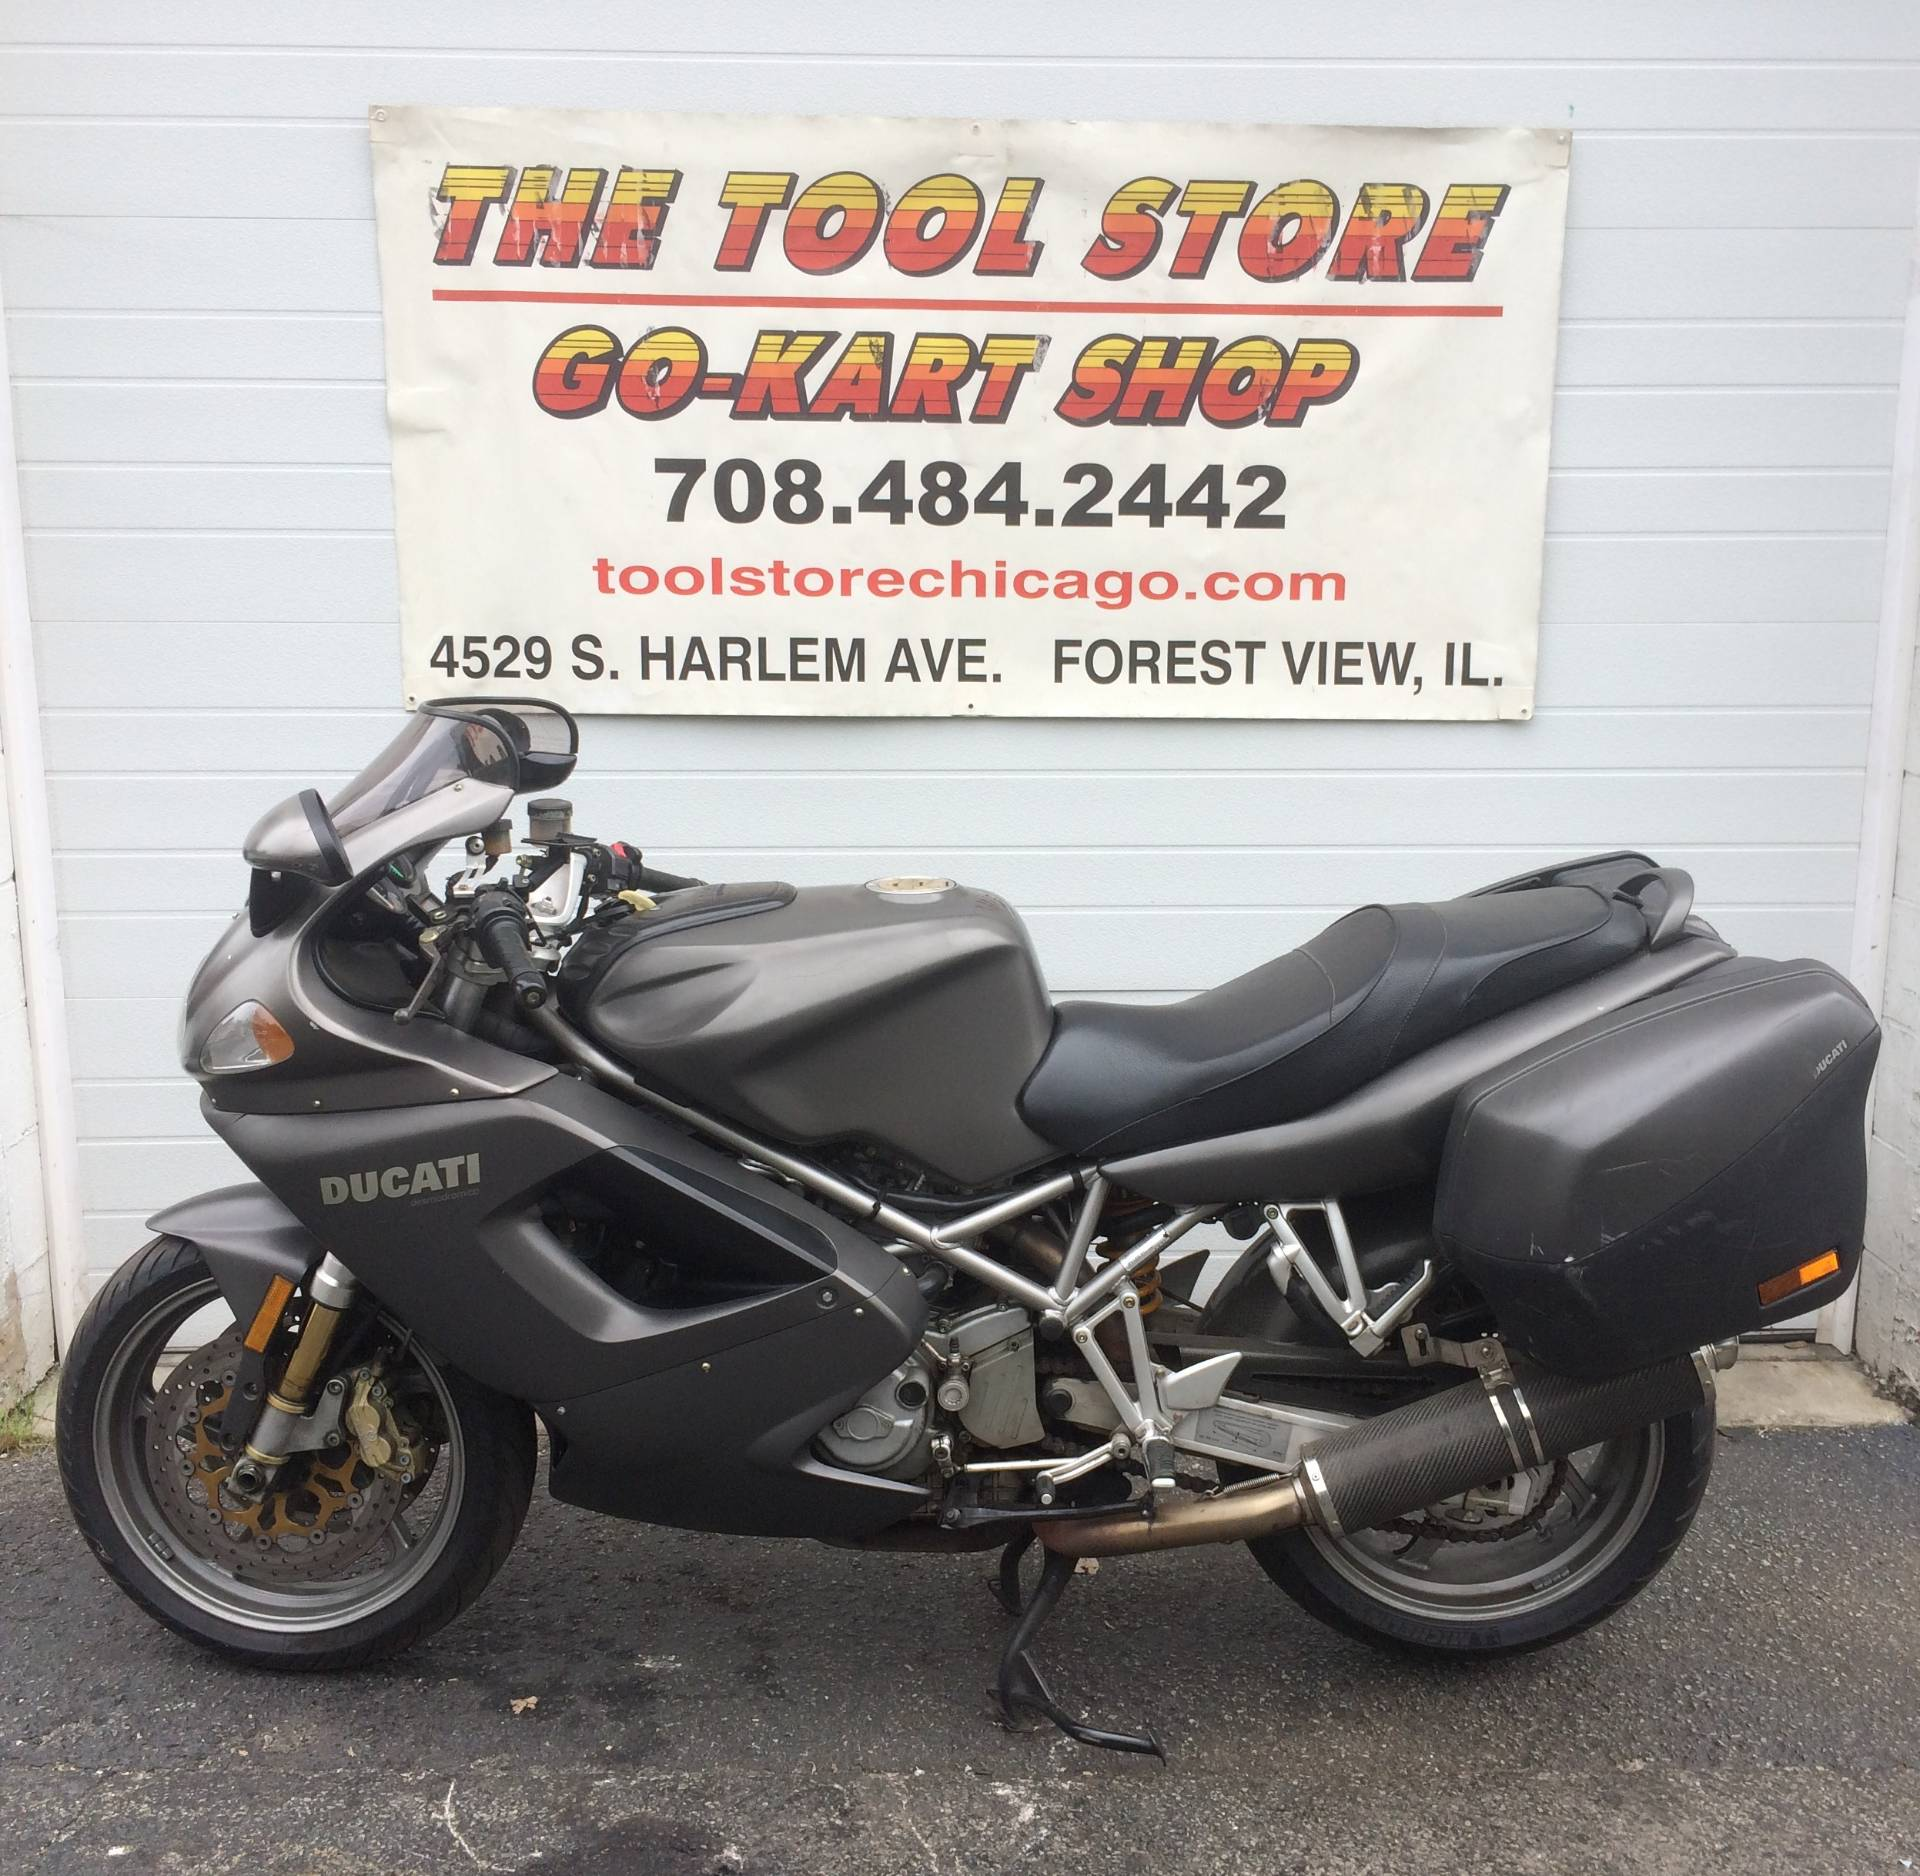 2002 Ducati 996 SuperSport in Forest View, Illinois